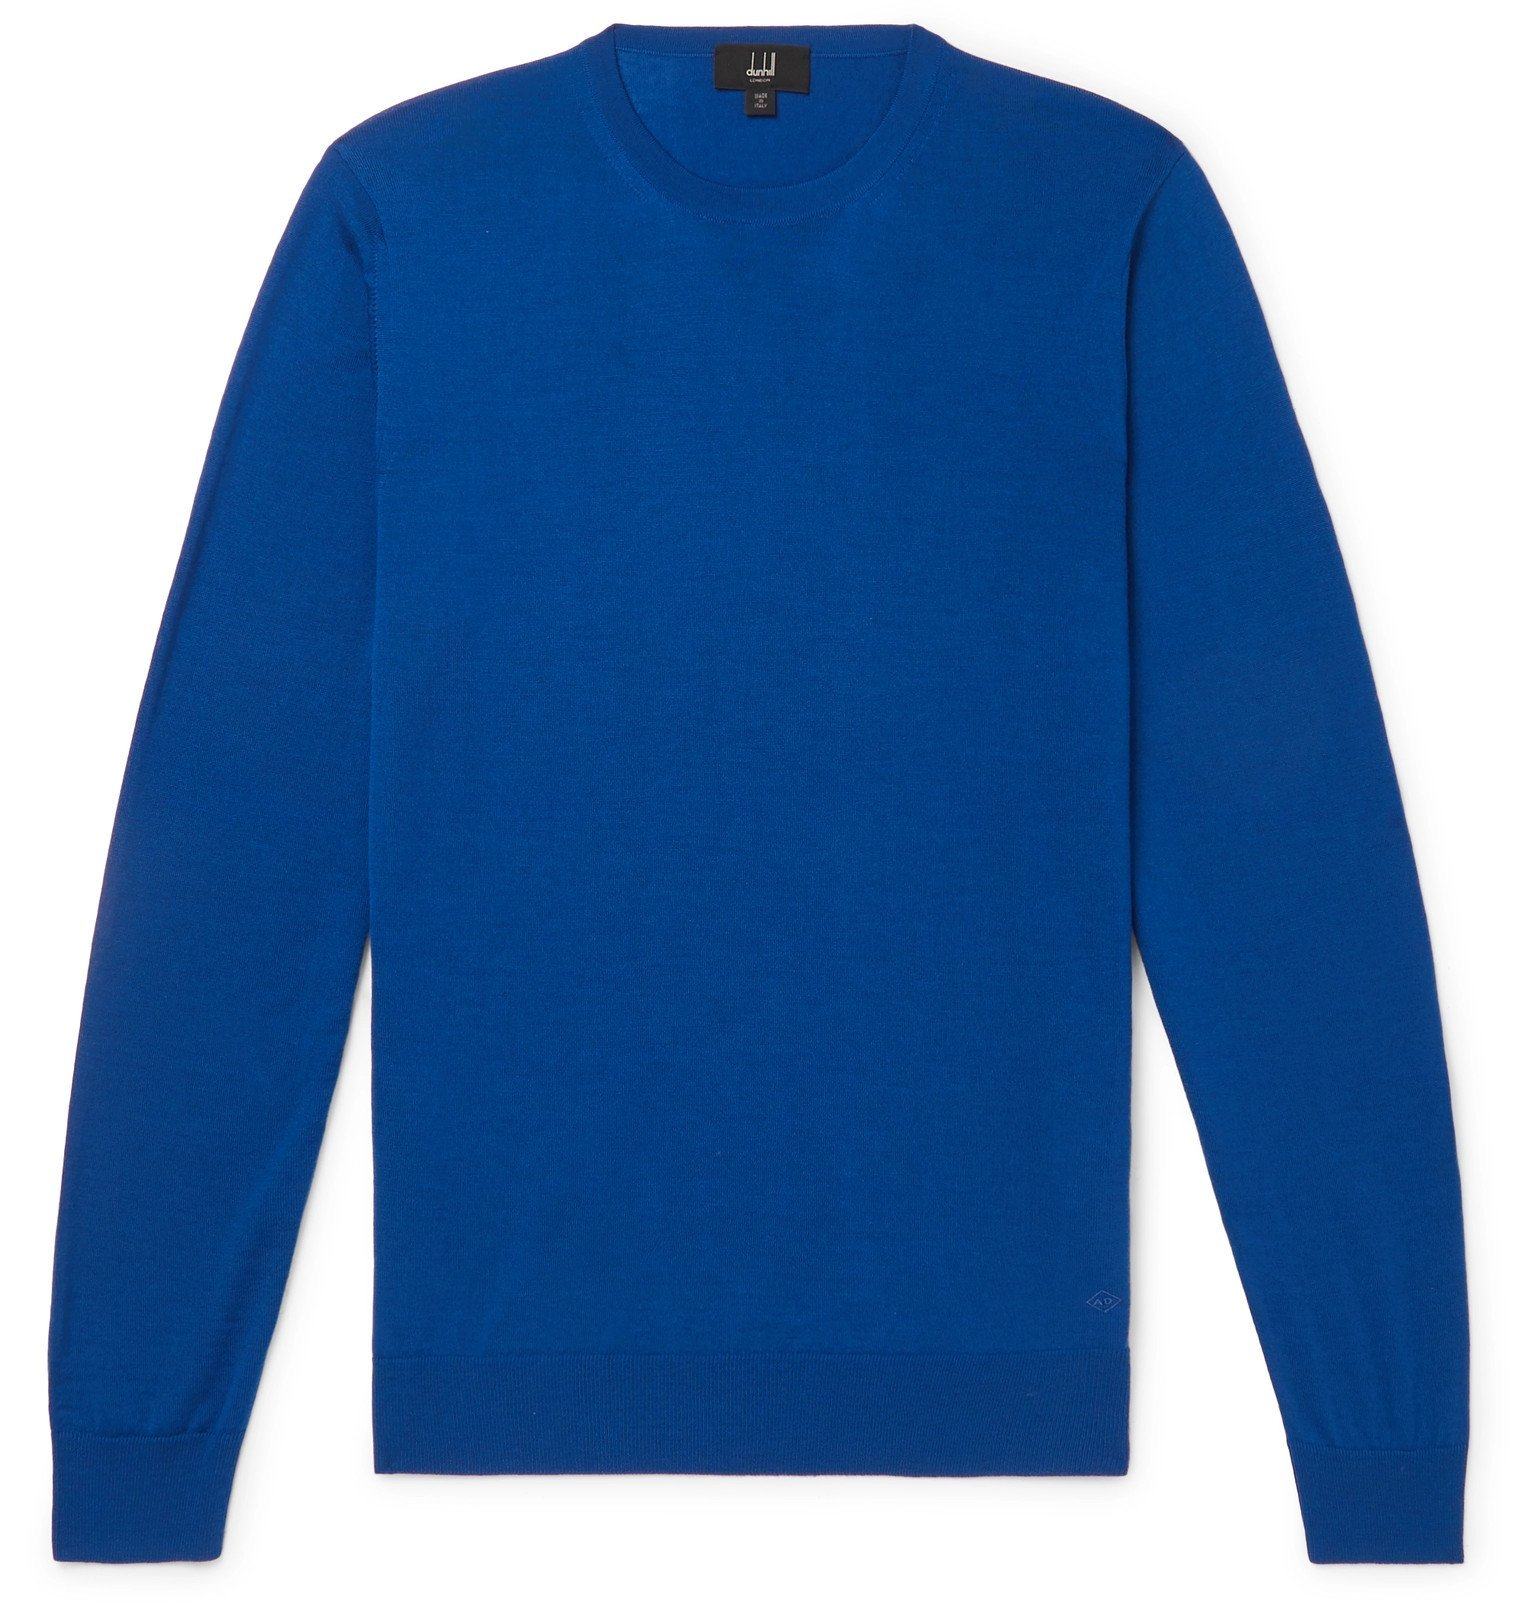 Dunhill - Wool Sweater - Blue